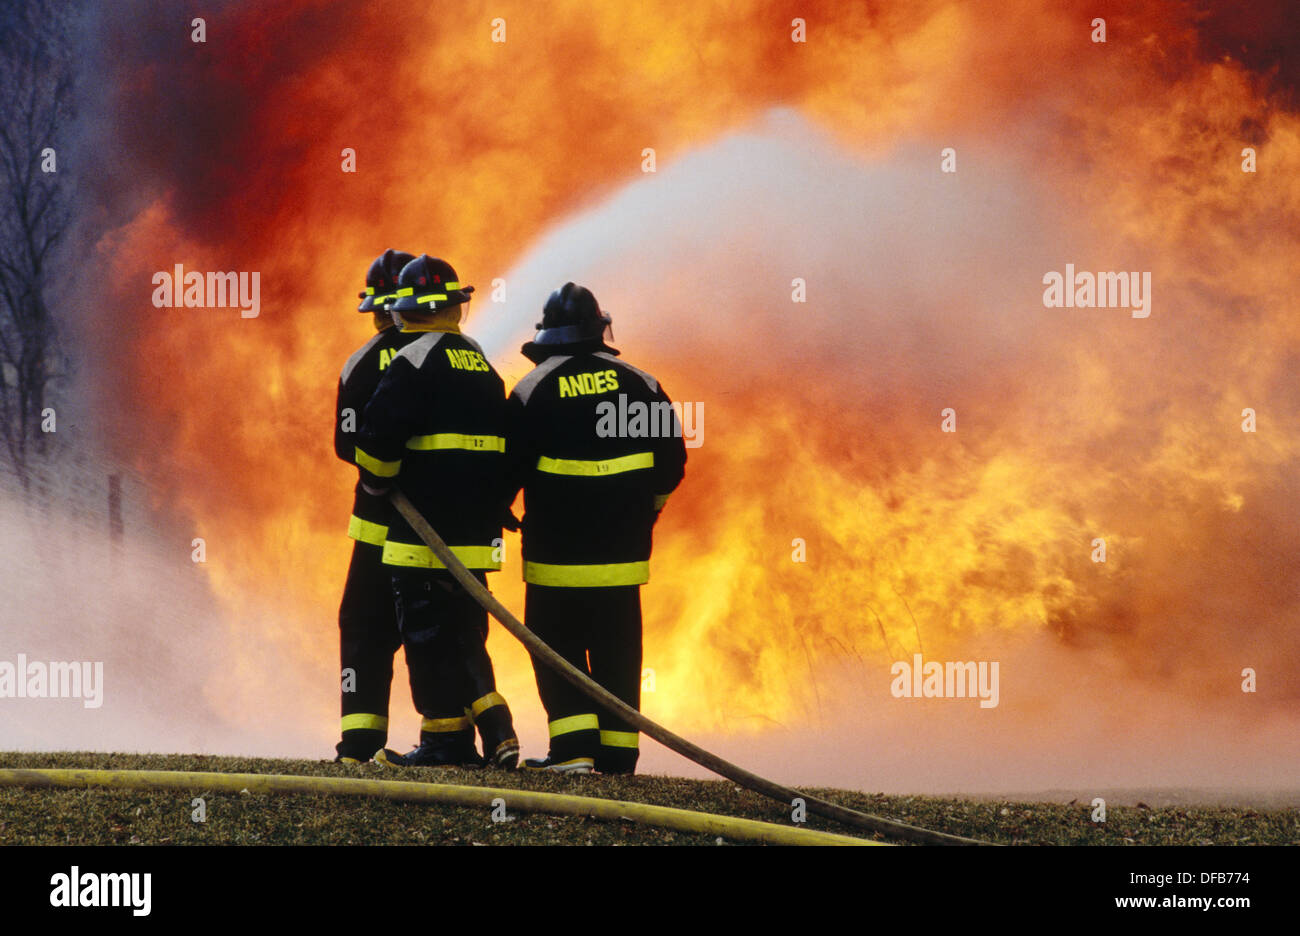 firemen putting out fire stock photo 61098104 alamy